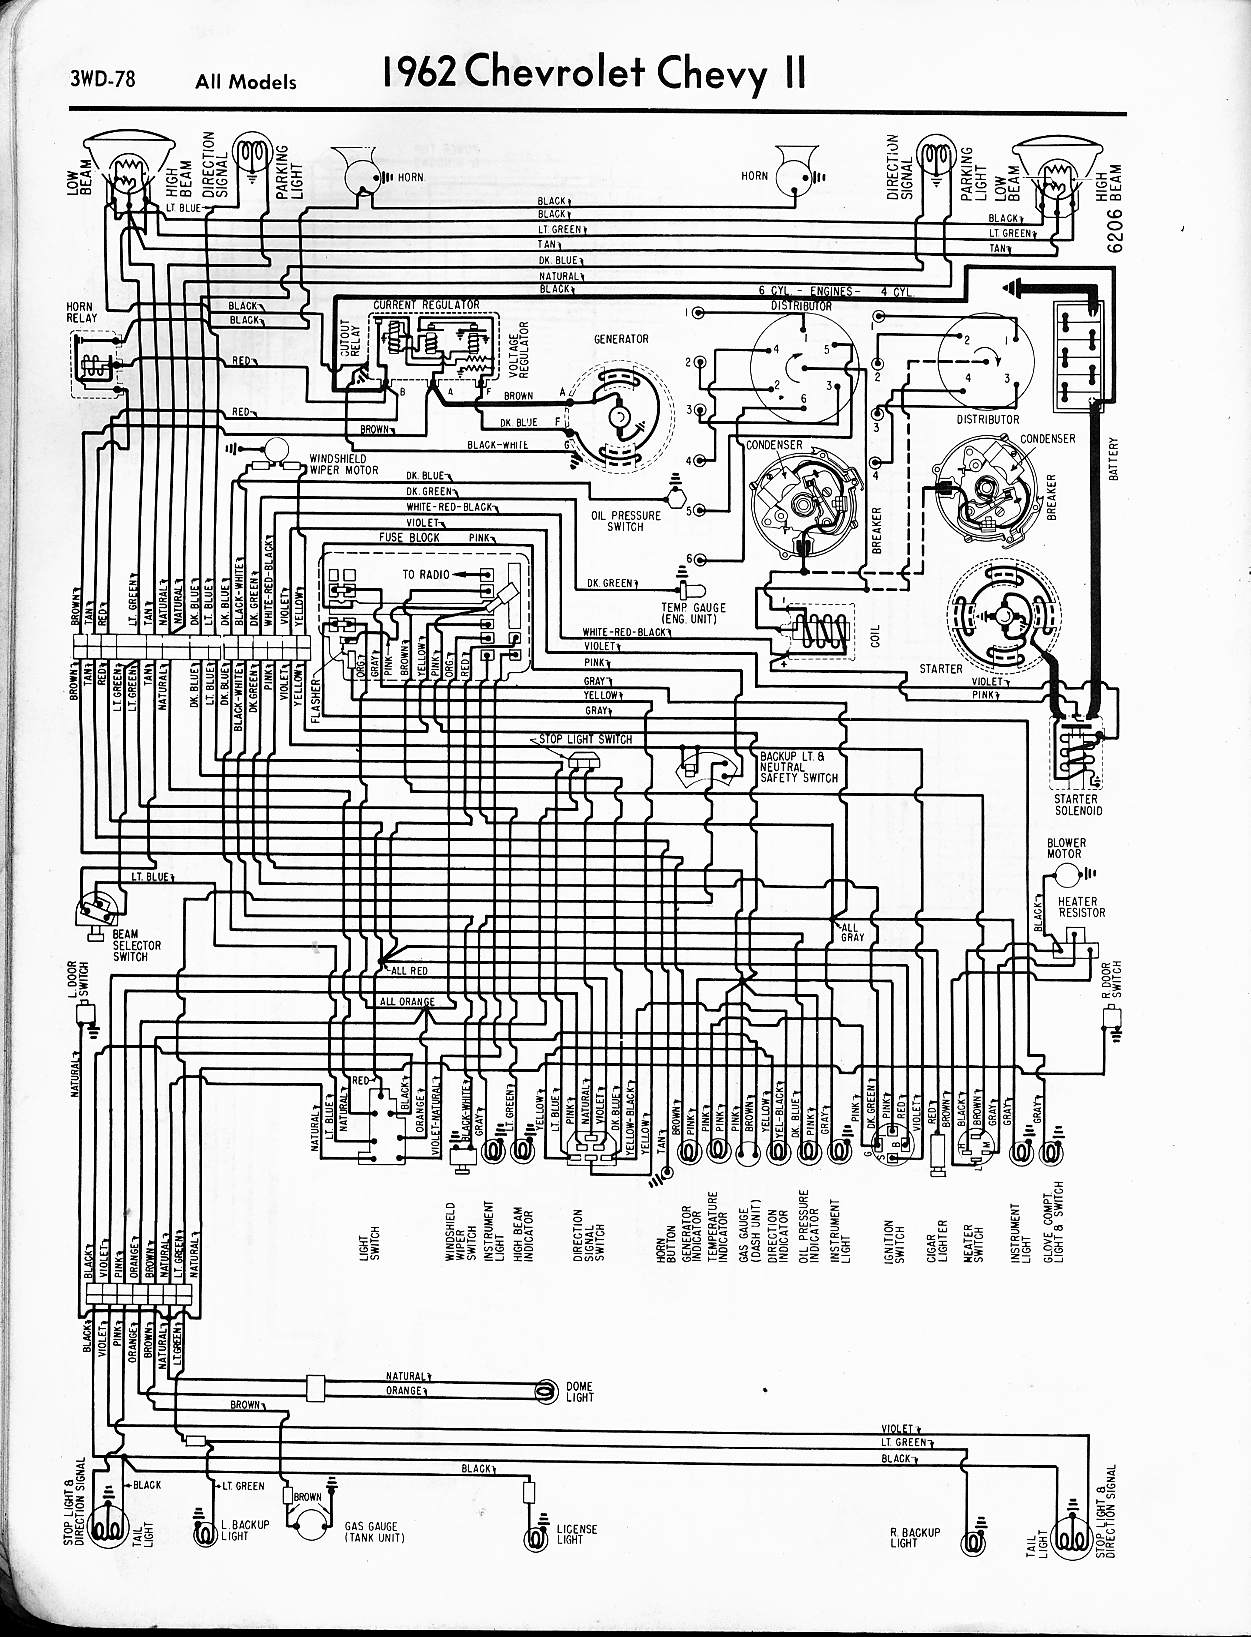 1968 Chevy Impala Wiring Diagram Archive Of Automotive For 68 Turn Signal Electrical Diagrams Rh Glenifferagility Co Uk